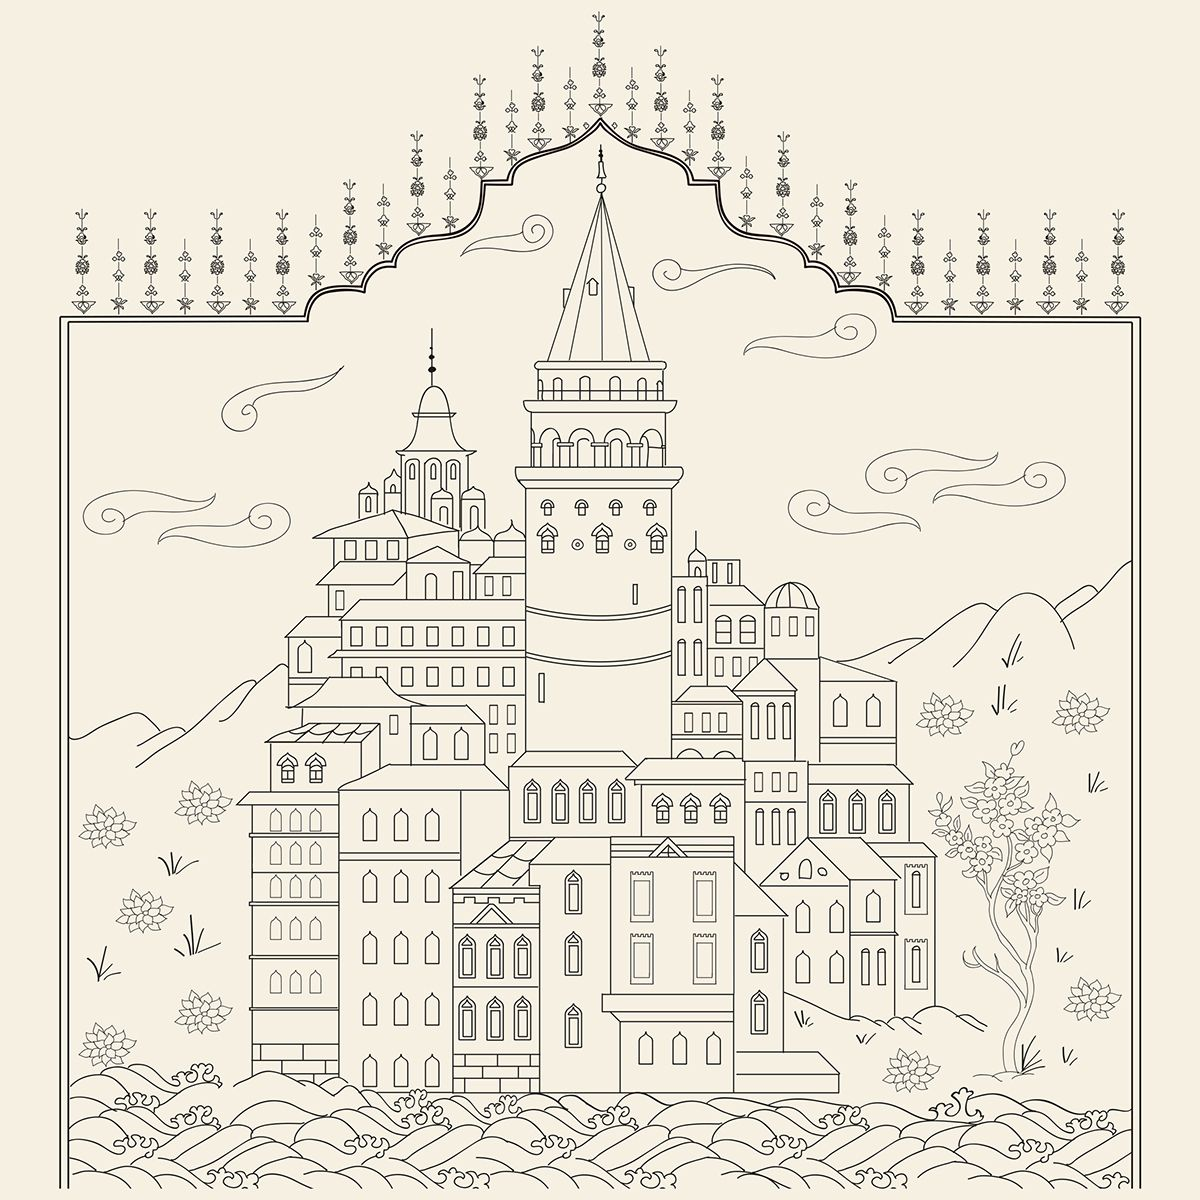 Ottoman Miniature Design Adult Coloring Book on Behance